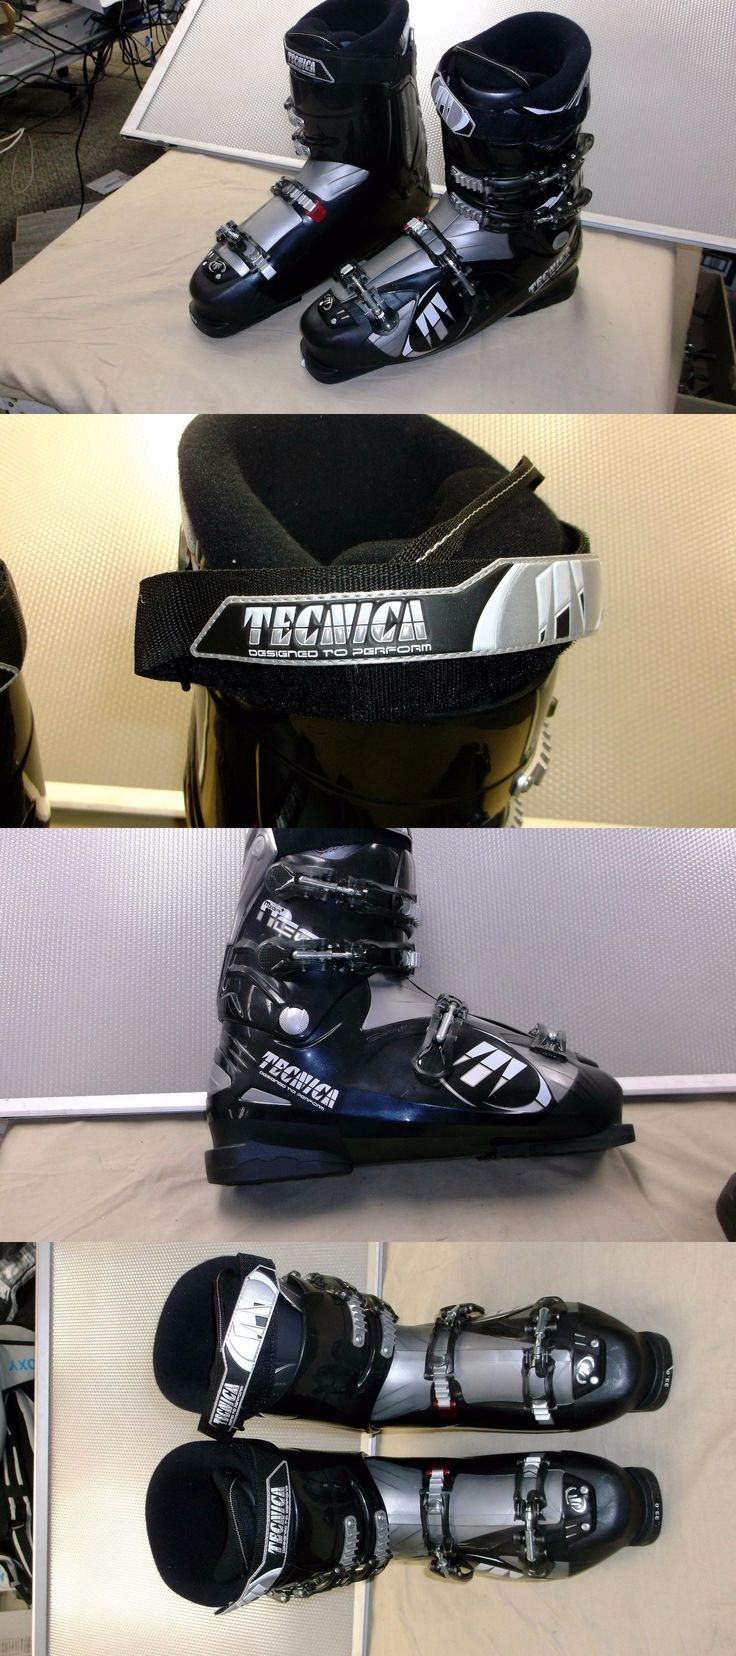 Other Downhill Skiing 1302: Tecnica Mega 4 Ski Boots- New- Size 33.0 Or Men S 15 , 4 Buckle, Big Man S Boot -> BUY IT NOW ONLY: $250 on eBay!